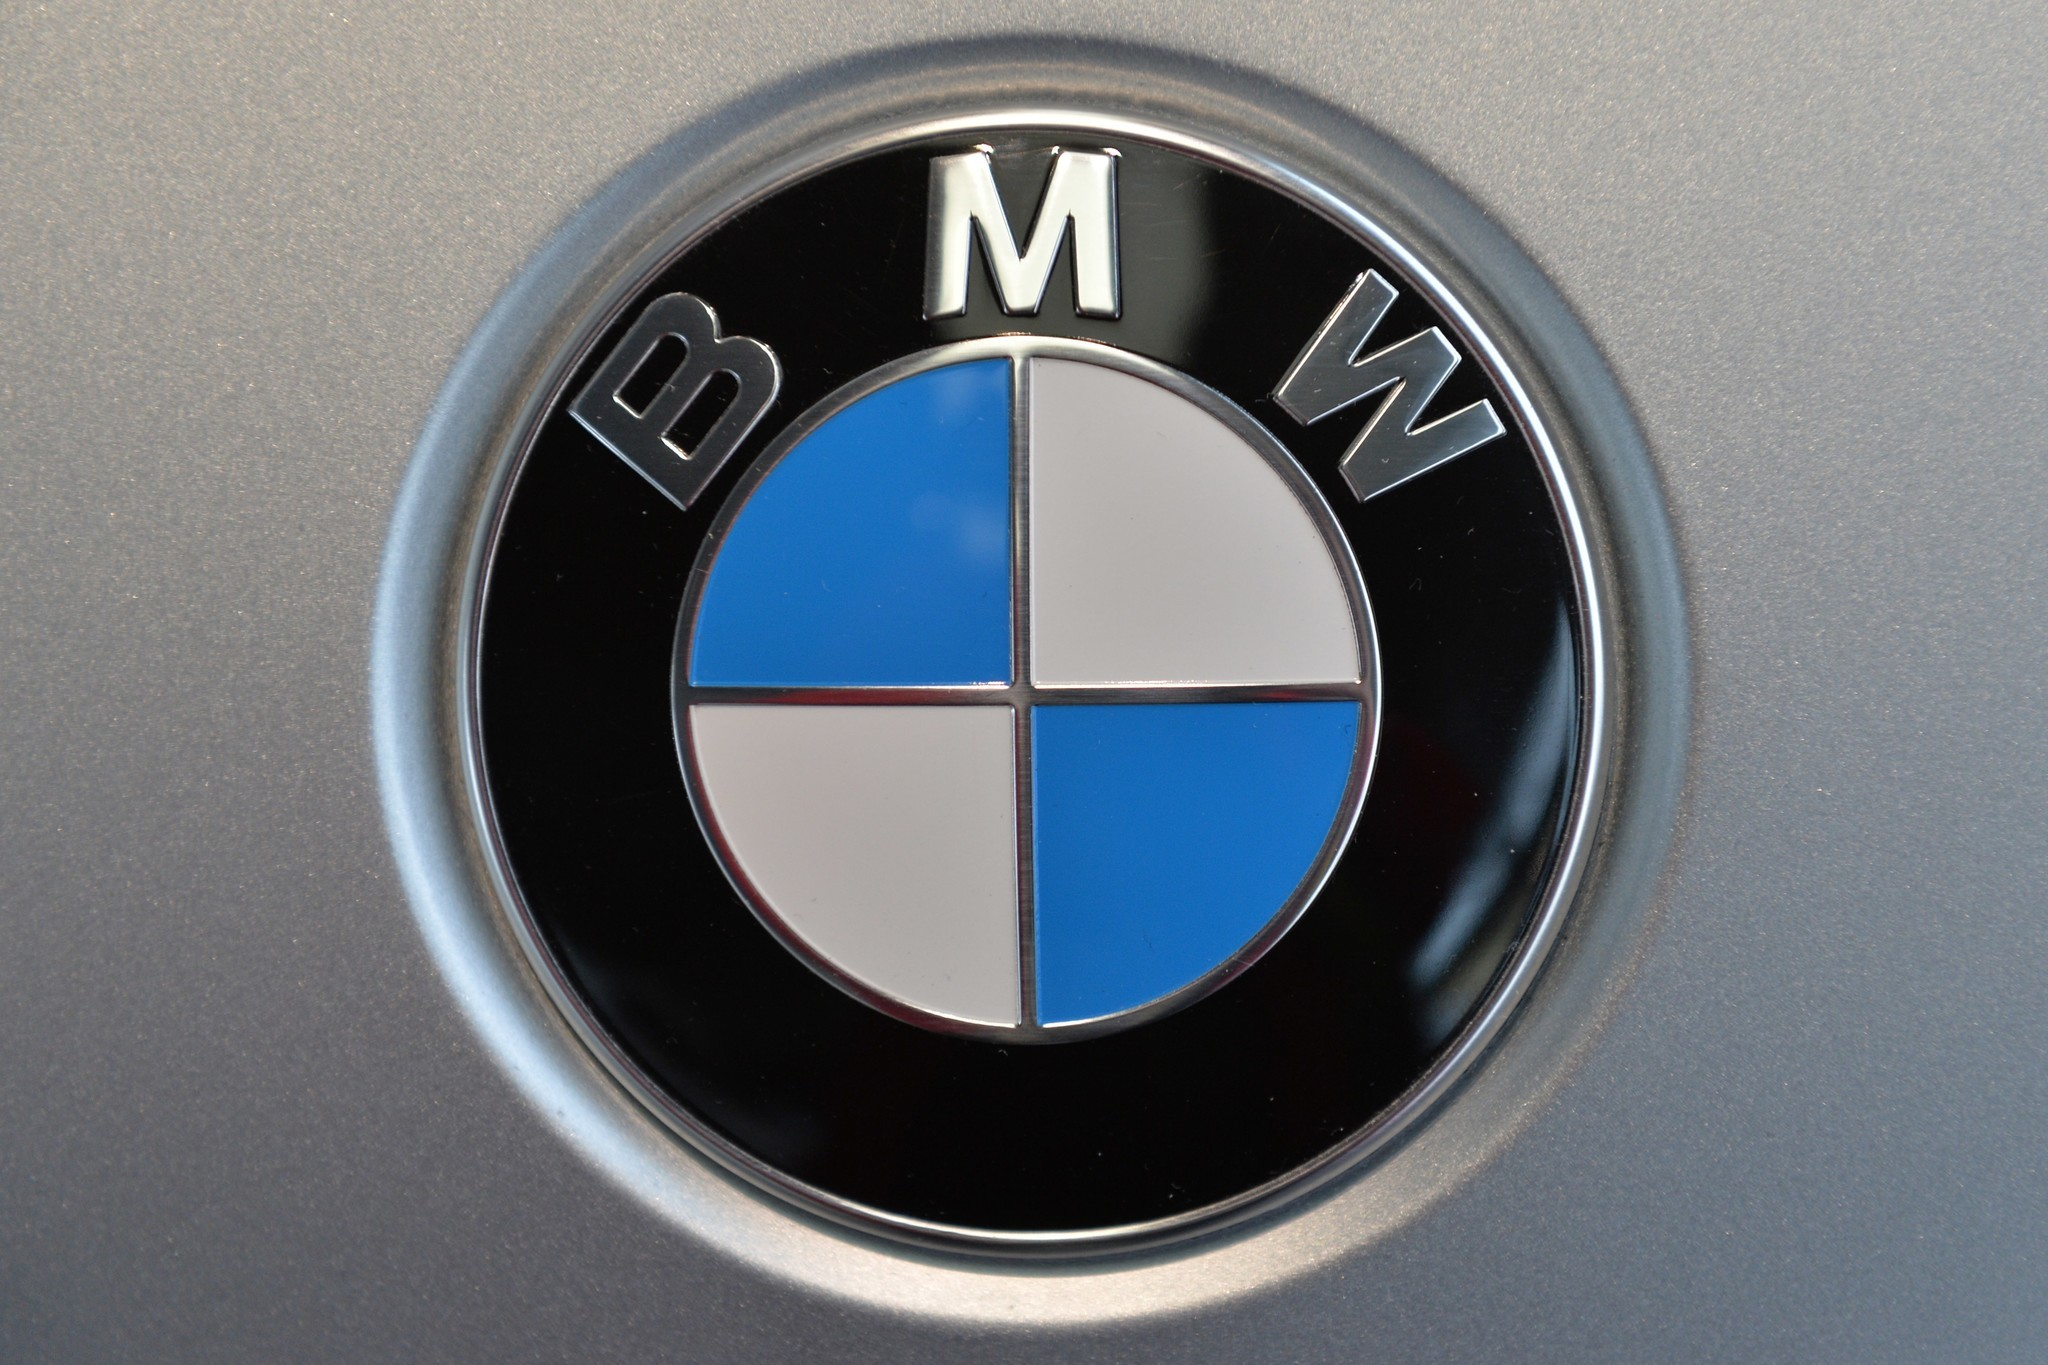 BMW issues recall for new Takata air bag problem Chicago Tribune